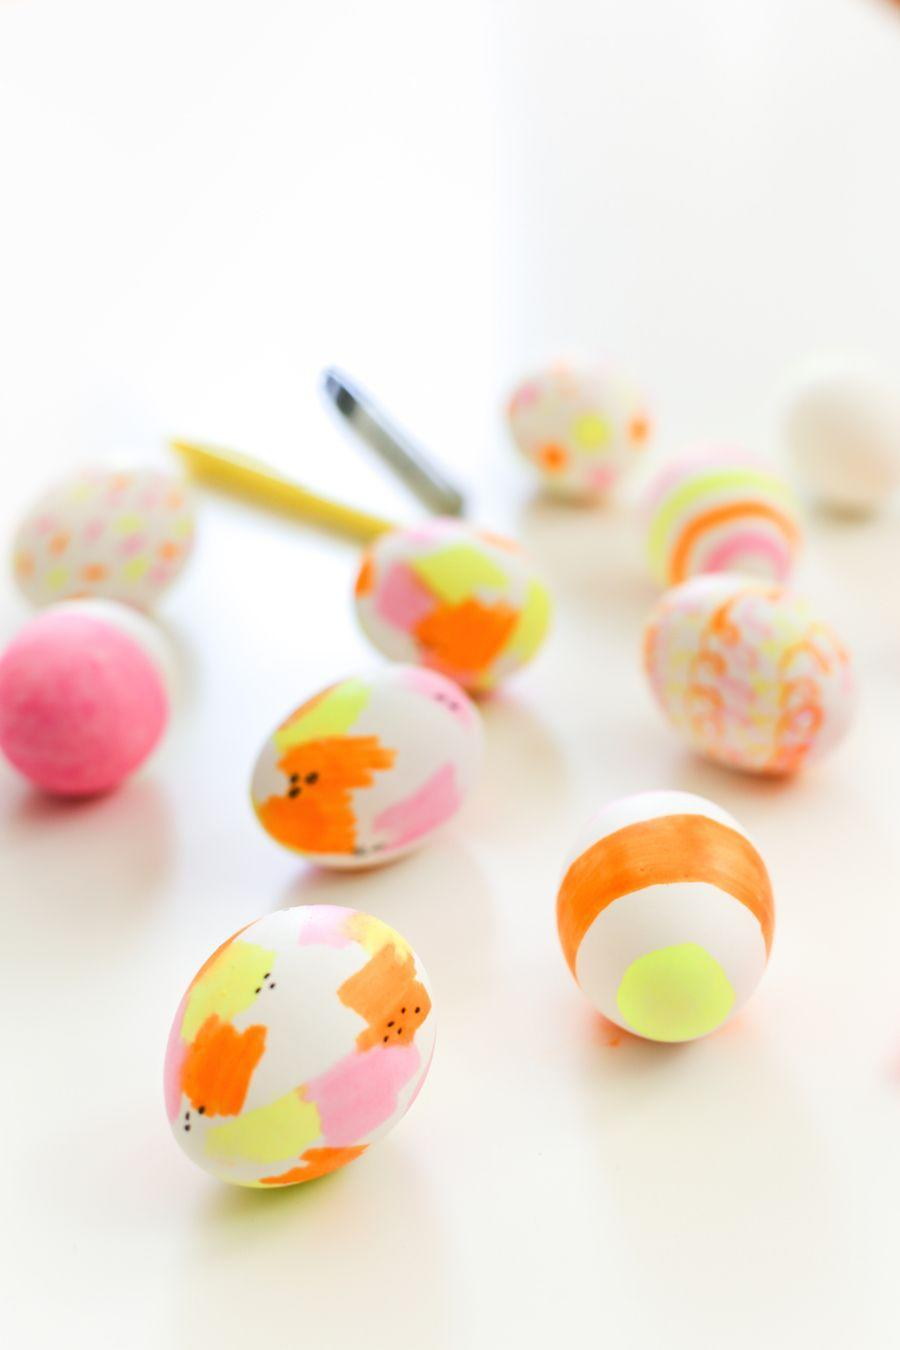 "<p>The easiest way to add a vibrant, mess-free pop of color to your Easter eggs? Highlighters! Dig through the family arts and crafts drawer for a few bright markers, then let your inner artist take over. </p><p><strong>Get the tutorial at <a href=""http://www.saltycanary.com/highlighter-easter-eggs/"" rel=""nofollow noopener"" target=""_blank"" data-ylk=""slk:Salty Canary"" class=""link rapid-noclick-resp"">Salty Canary</a>.</strong></p><p><strong><a class=""link rapid-noclick-resp"" href=""https://www.amazon.com/Sharpie-27145-Highlighters-Assorted-12-Count/dp/B002BA5WMI/?tag=syn-yahoo-20&ascsubtag=%5Bartid%7C10050.g.1282%5Bsrc%7Cyahoo-us"" rel=""nofollow noopener"" target=""_blank"" data-ylk=""slk:SHOP HIGHLIGHTERS"">SHOP HIGHLIGHTERS</a><br></strong></p>"